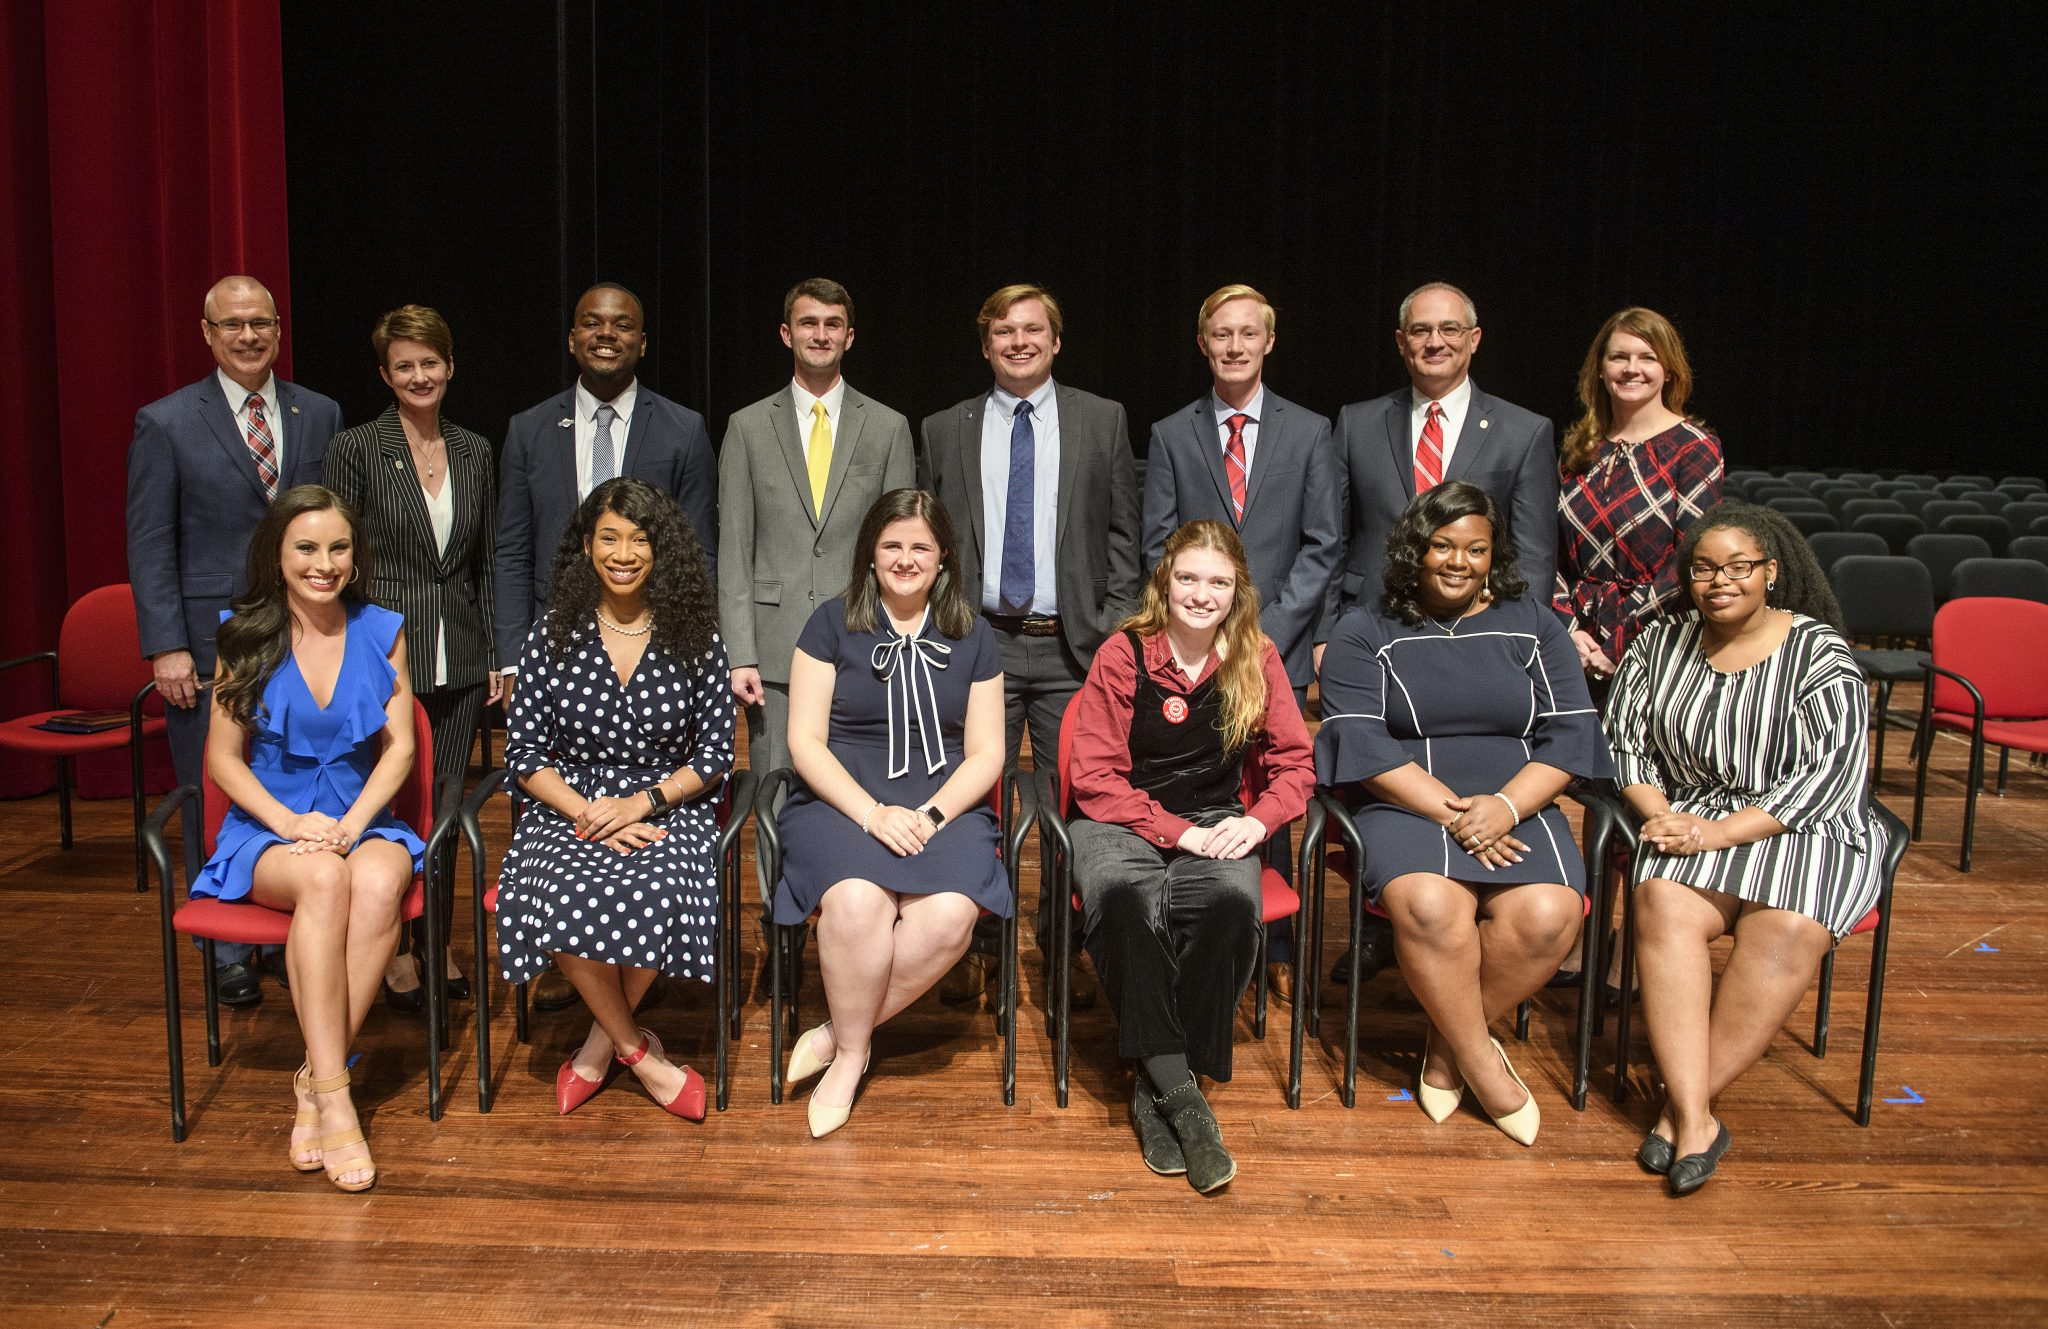 The 2019 University of Mississippi Hall of Fame. Pictured are (front row, from left) Blair Wortsmith, of Little Rock, Arkansas; Makala McNeil, of Grenada; Mallie Imbler, of Tupelo; Jaz Brisack, of Oxford; Skylyn Irby, of Batesville; Randon Hill, of Oxford; (top row from left) UM Provost Noel Wilkin; UM Vice Chancellor for Student Affairs Brandi Hephner LaBanc; Jarvis Benson, of Grenada; Levi Bevis, of Florence, Alabama; Elam Miller, of Murfreesboro, Tennessee; Jacob Ferguson, of Randolph; UM Interim Chancellor Larry Sparks and UM Assistant Vice Chancellor and Dean of Students Melinda Sutton Noss. Photo by Thomas Graning/Ole Miss Digital Imaging Services